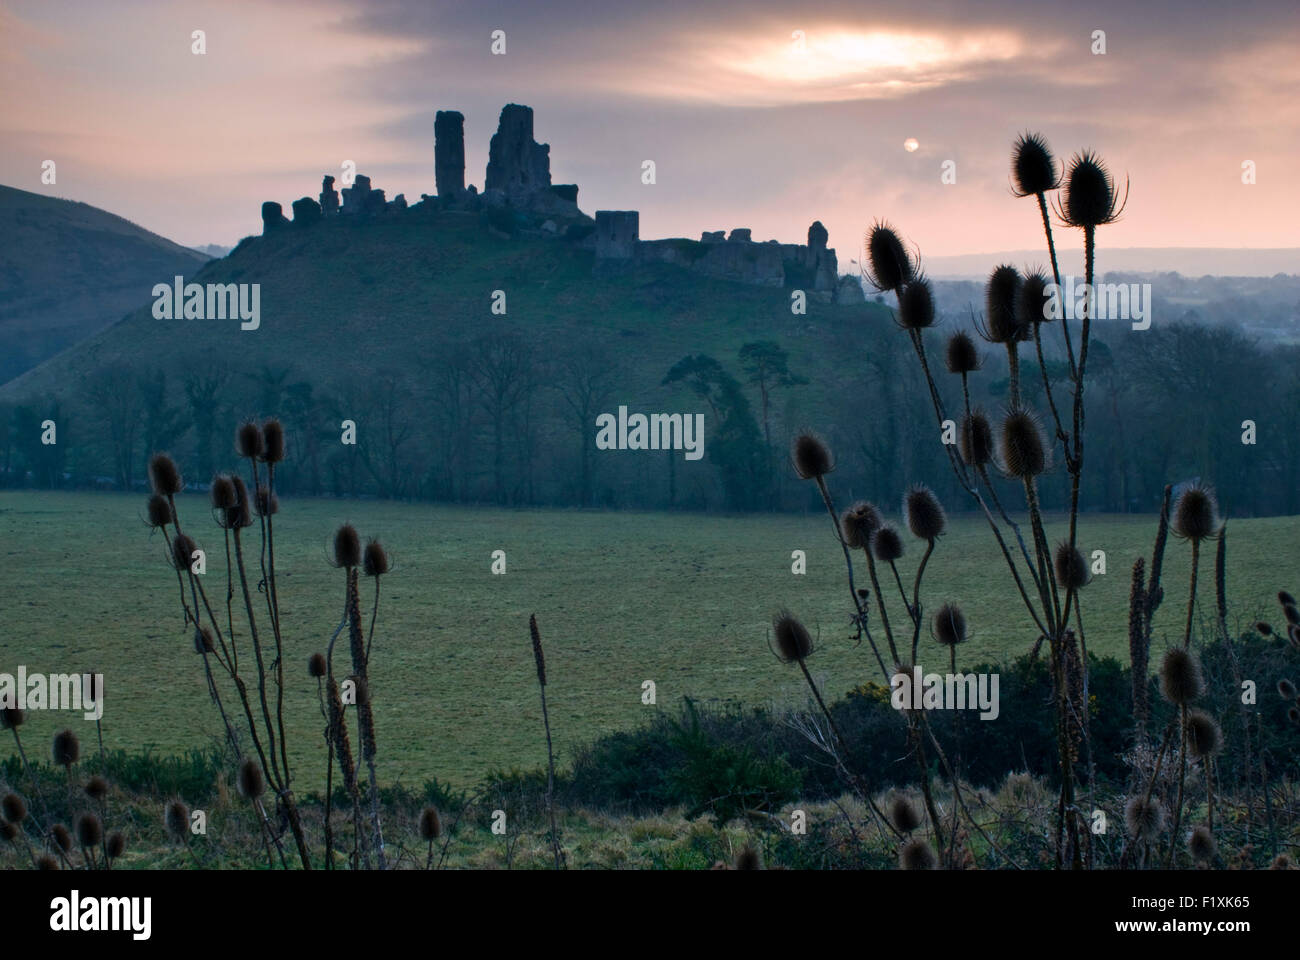 The ruins of Corfe Castle on the Isle of Purbeck in Dorset, England, UK - Stock Image